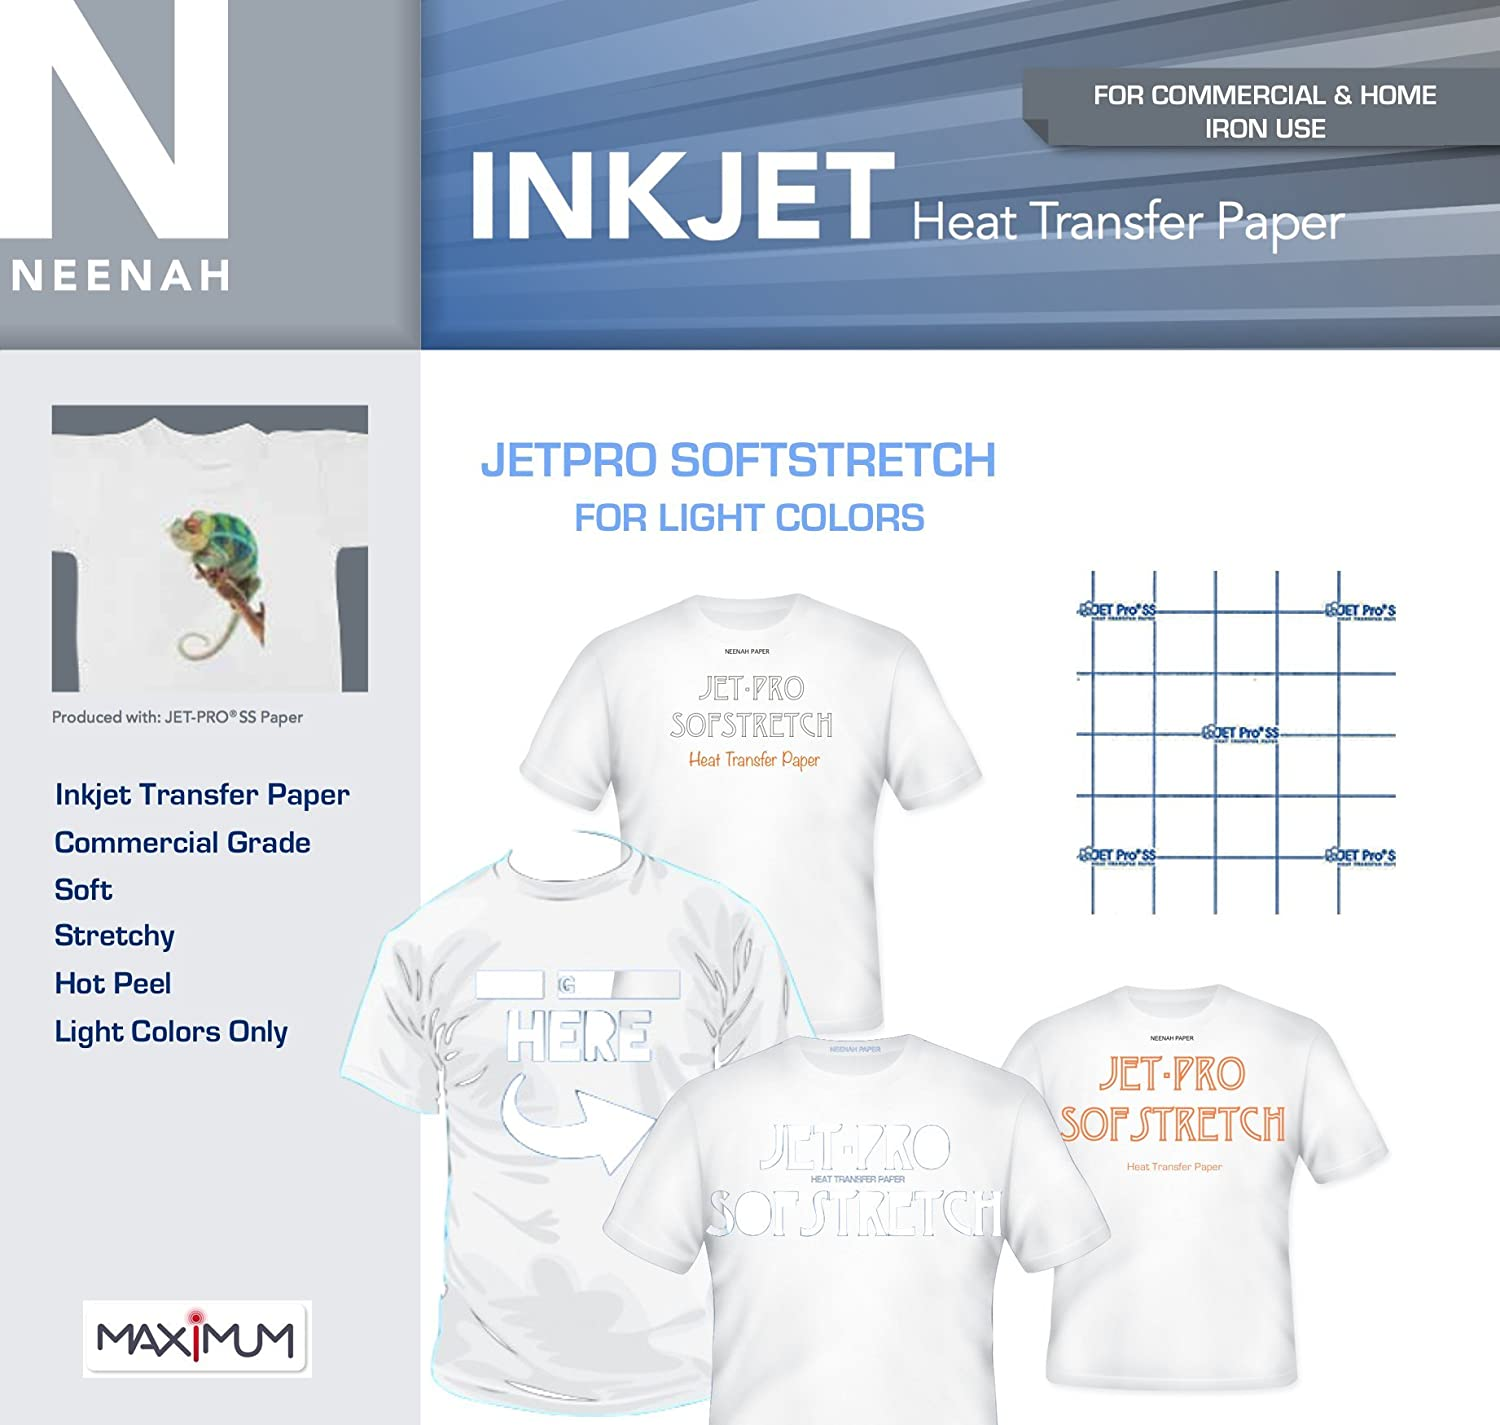 "SOFSTRETCH INKJET IRON ON HEAT TRANSFER PAPER NEENAH JET PRO SS 8.5 X 11/"" 50 PK"